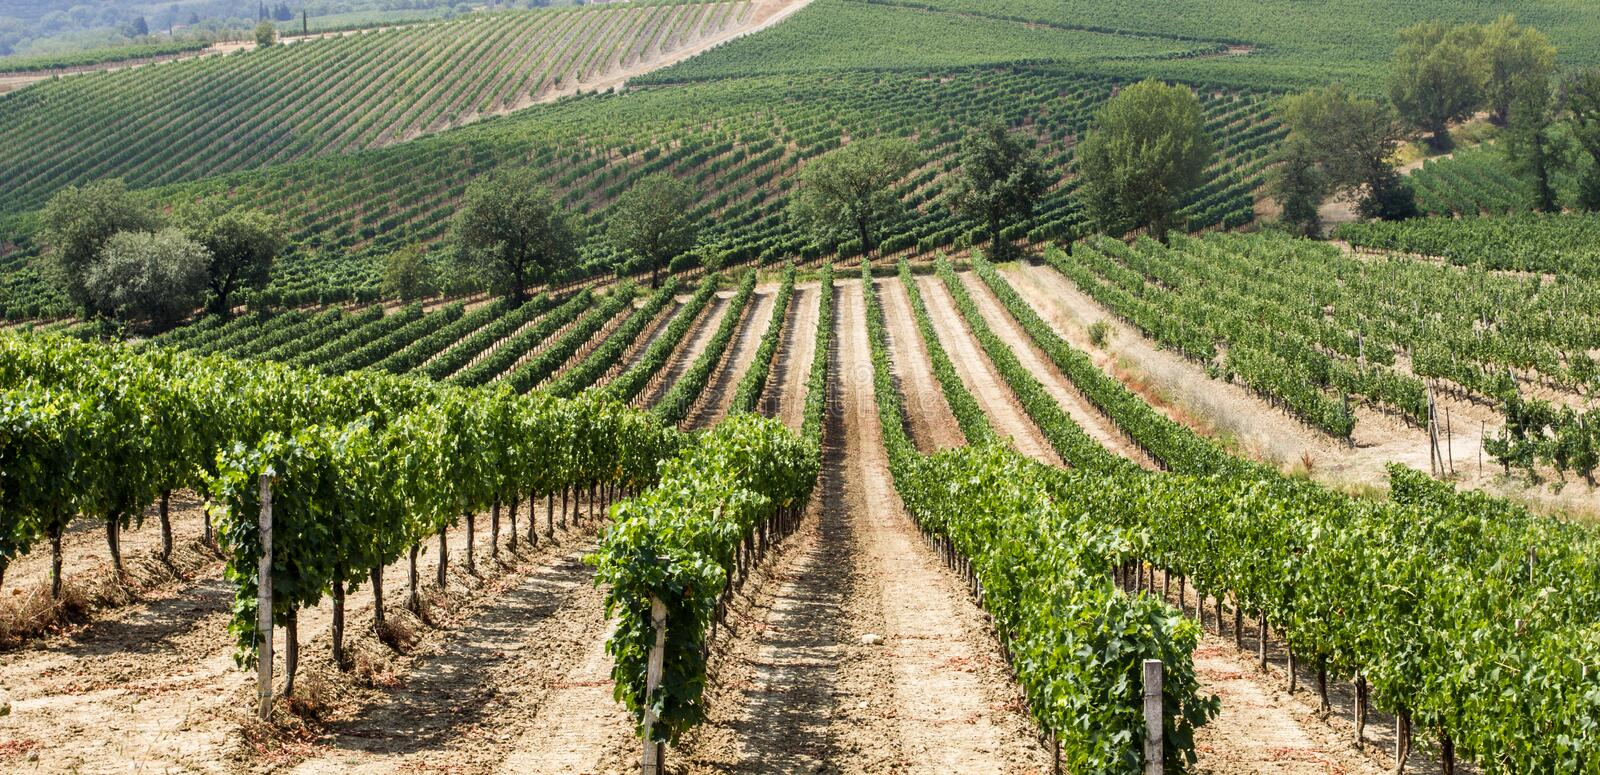 Vineyard in the area of production of Vino Nobile, Montepulciano, Italy. Vino Nobile di Montepulciano is an italian DOCG red vine produced in the stock photography